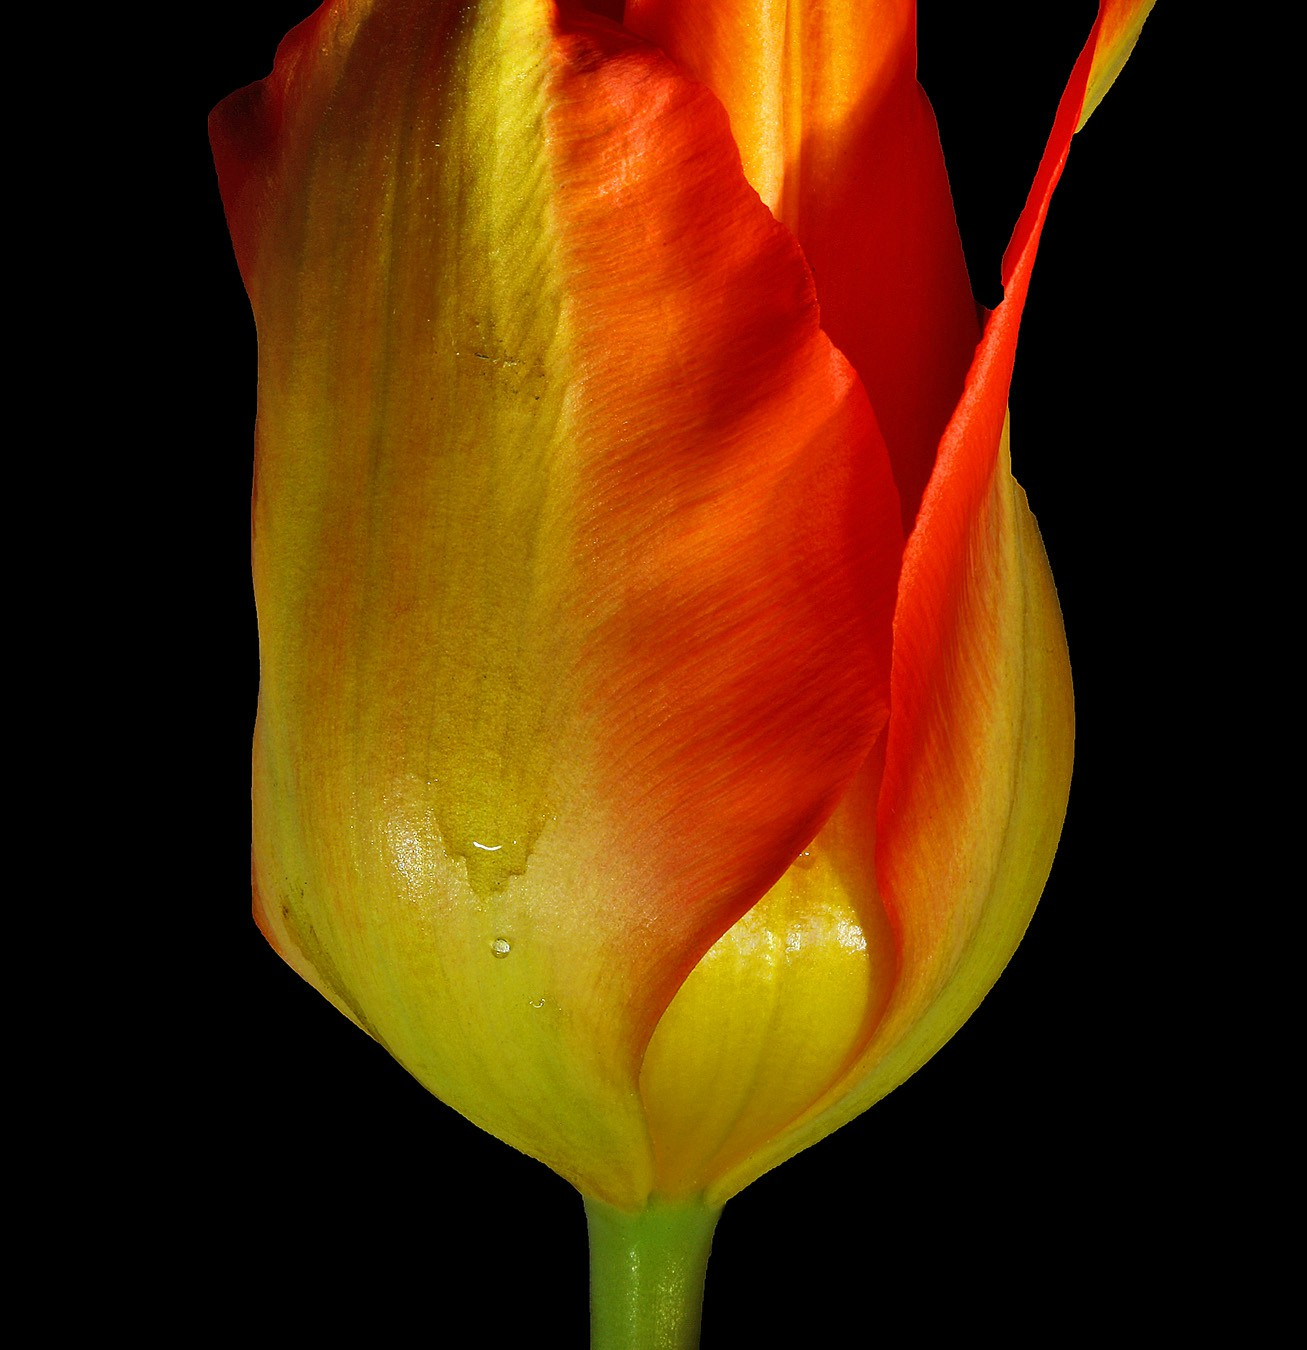 lil tulip img aw author sava gregory and verena